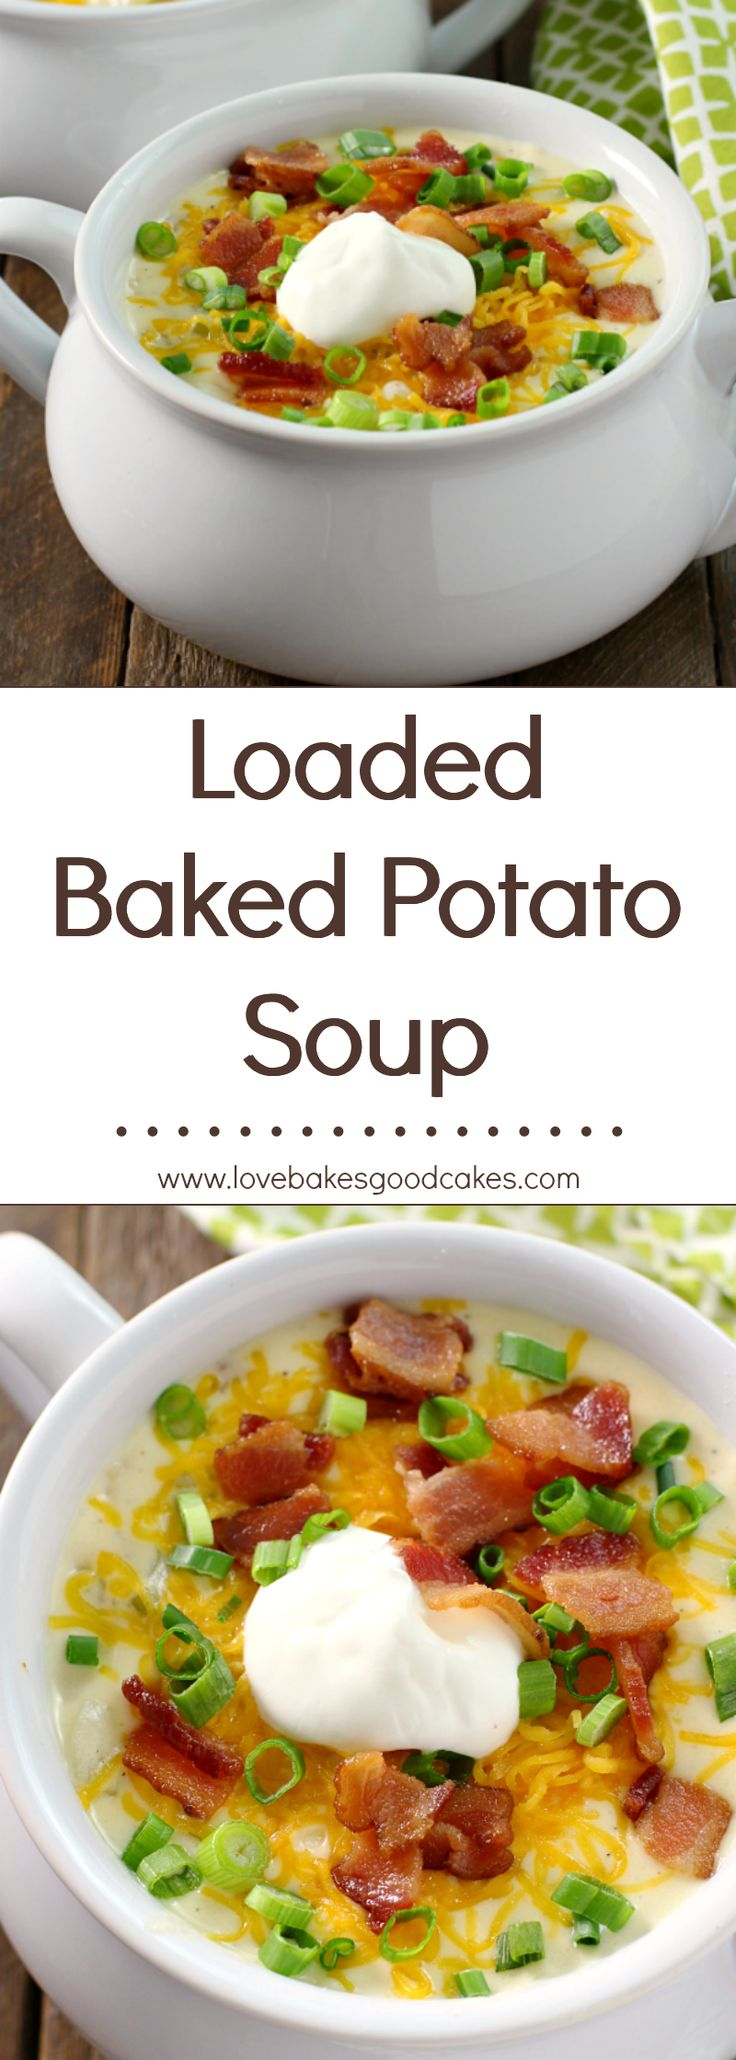 AMAZING!! My family loves this Loaded Baked Potato Soup!! Ad